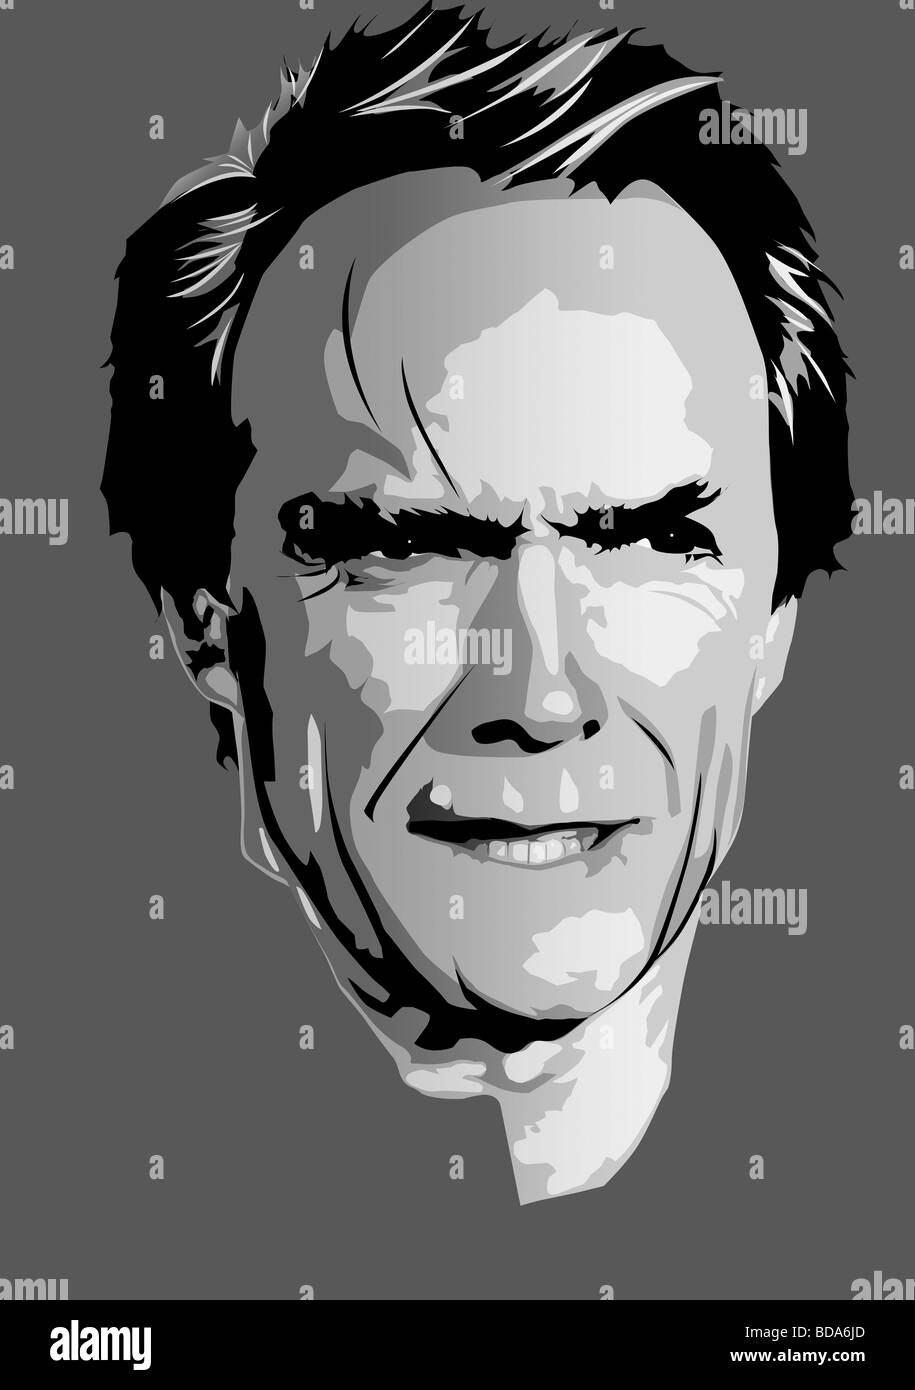 Clint eastwood pop art style portrait illustration stock image